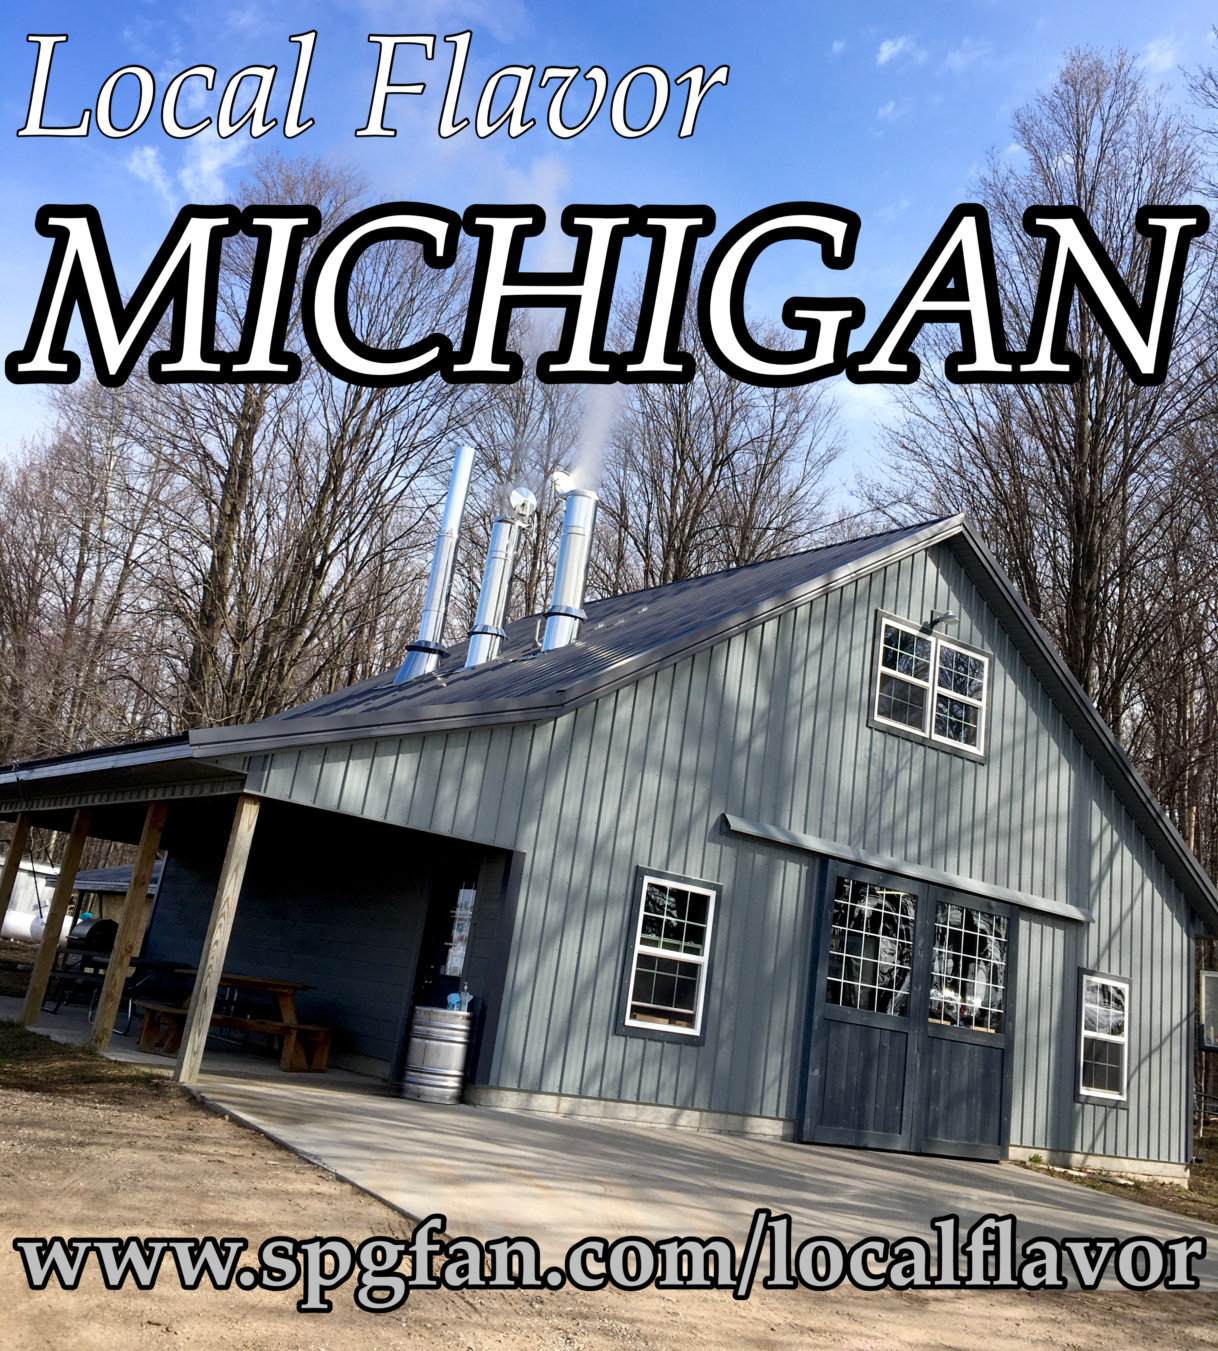 Michigan Local Flavor – Growers, Producers, and Makers of AWESOME Local Products!